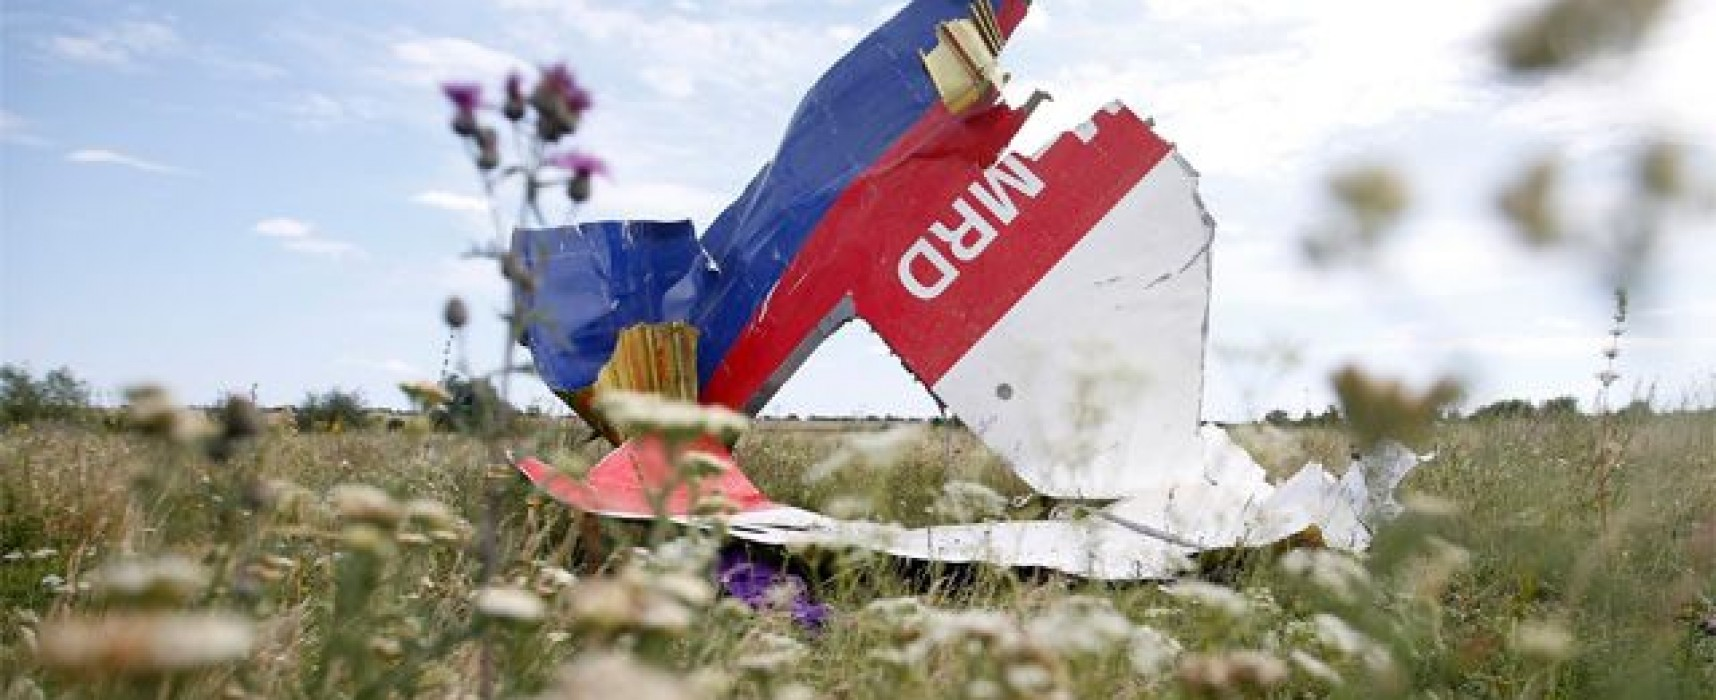 MH17 – The Open Source Investigation, Three Years Later